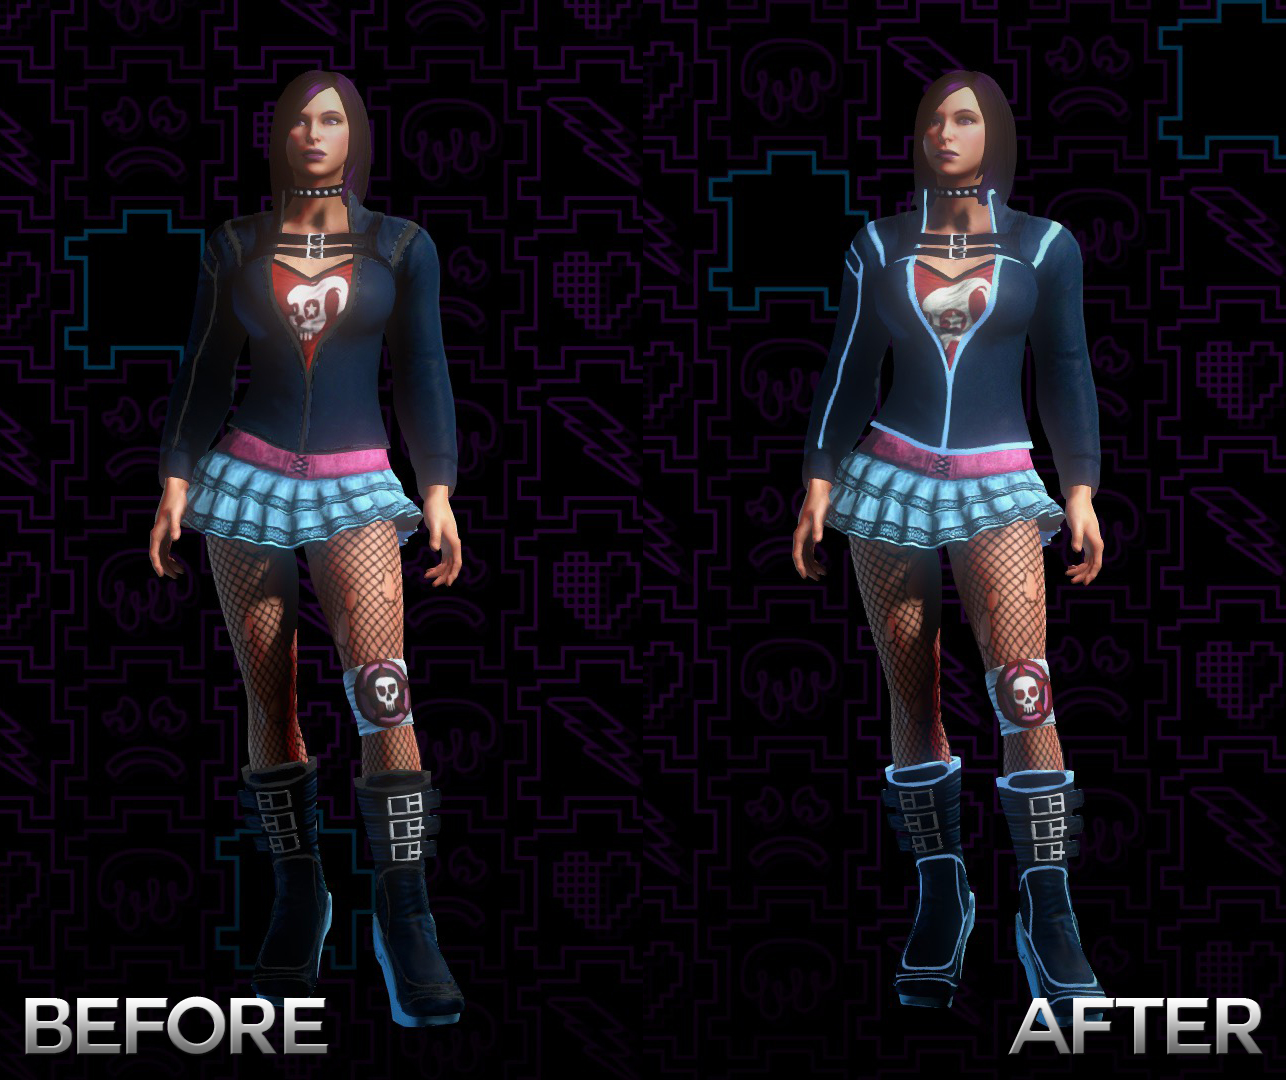 Bad Girl Outfit Saint Row 4 | Insured Fashion